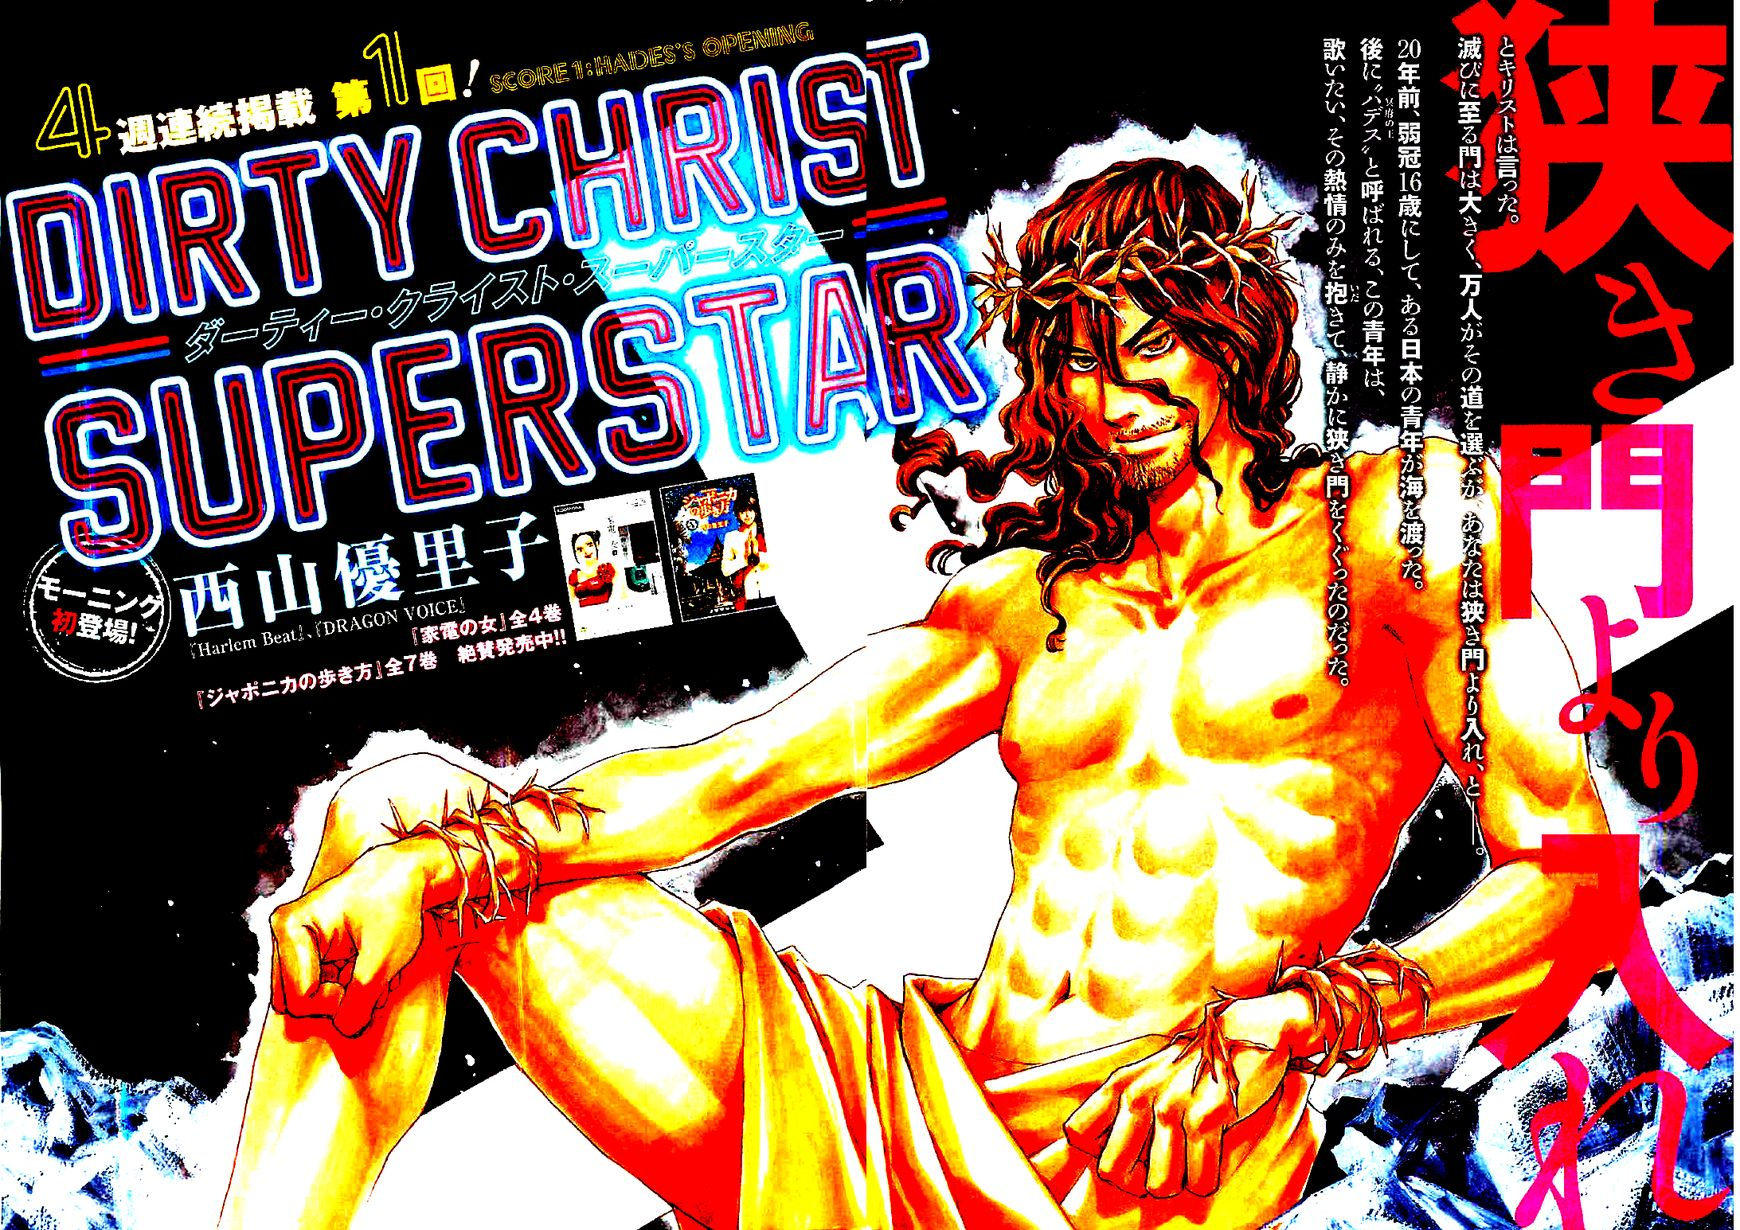 Dirty Christ Superstar 1 Page 2